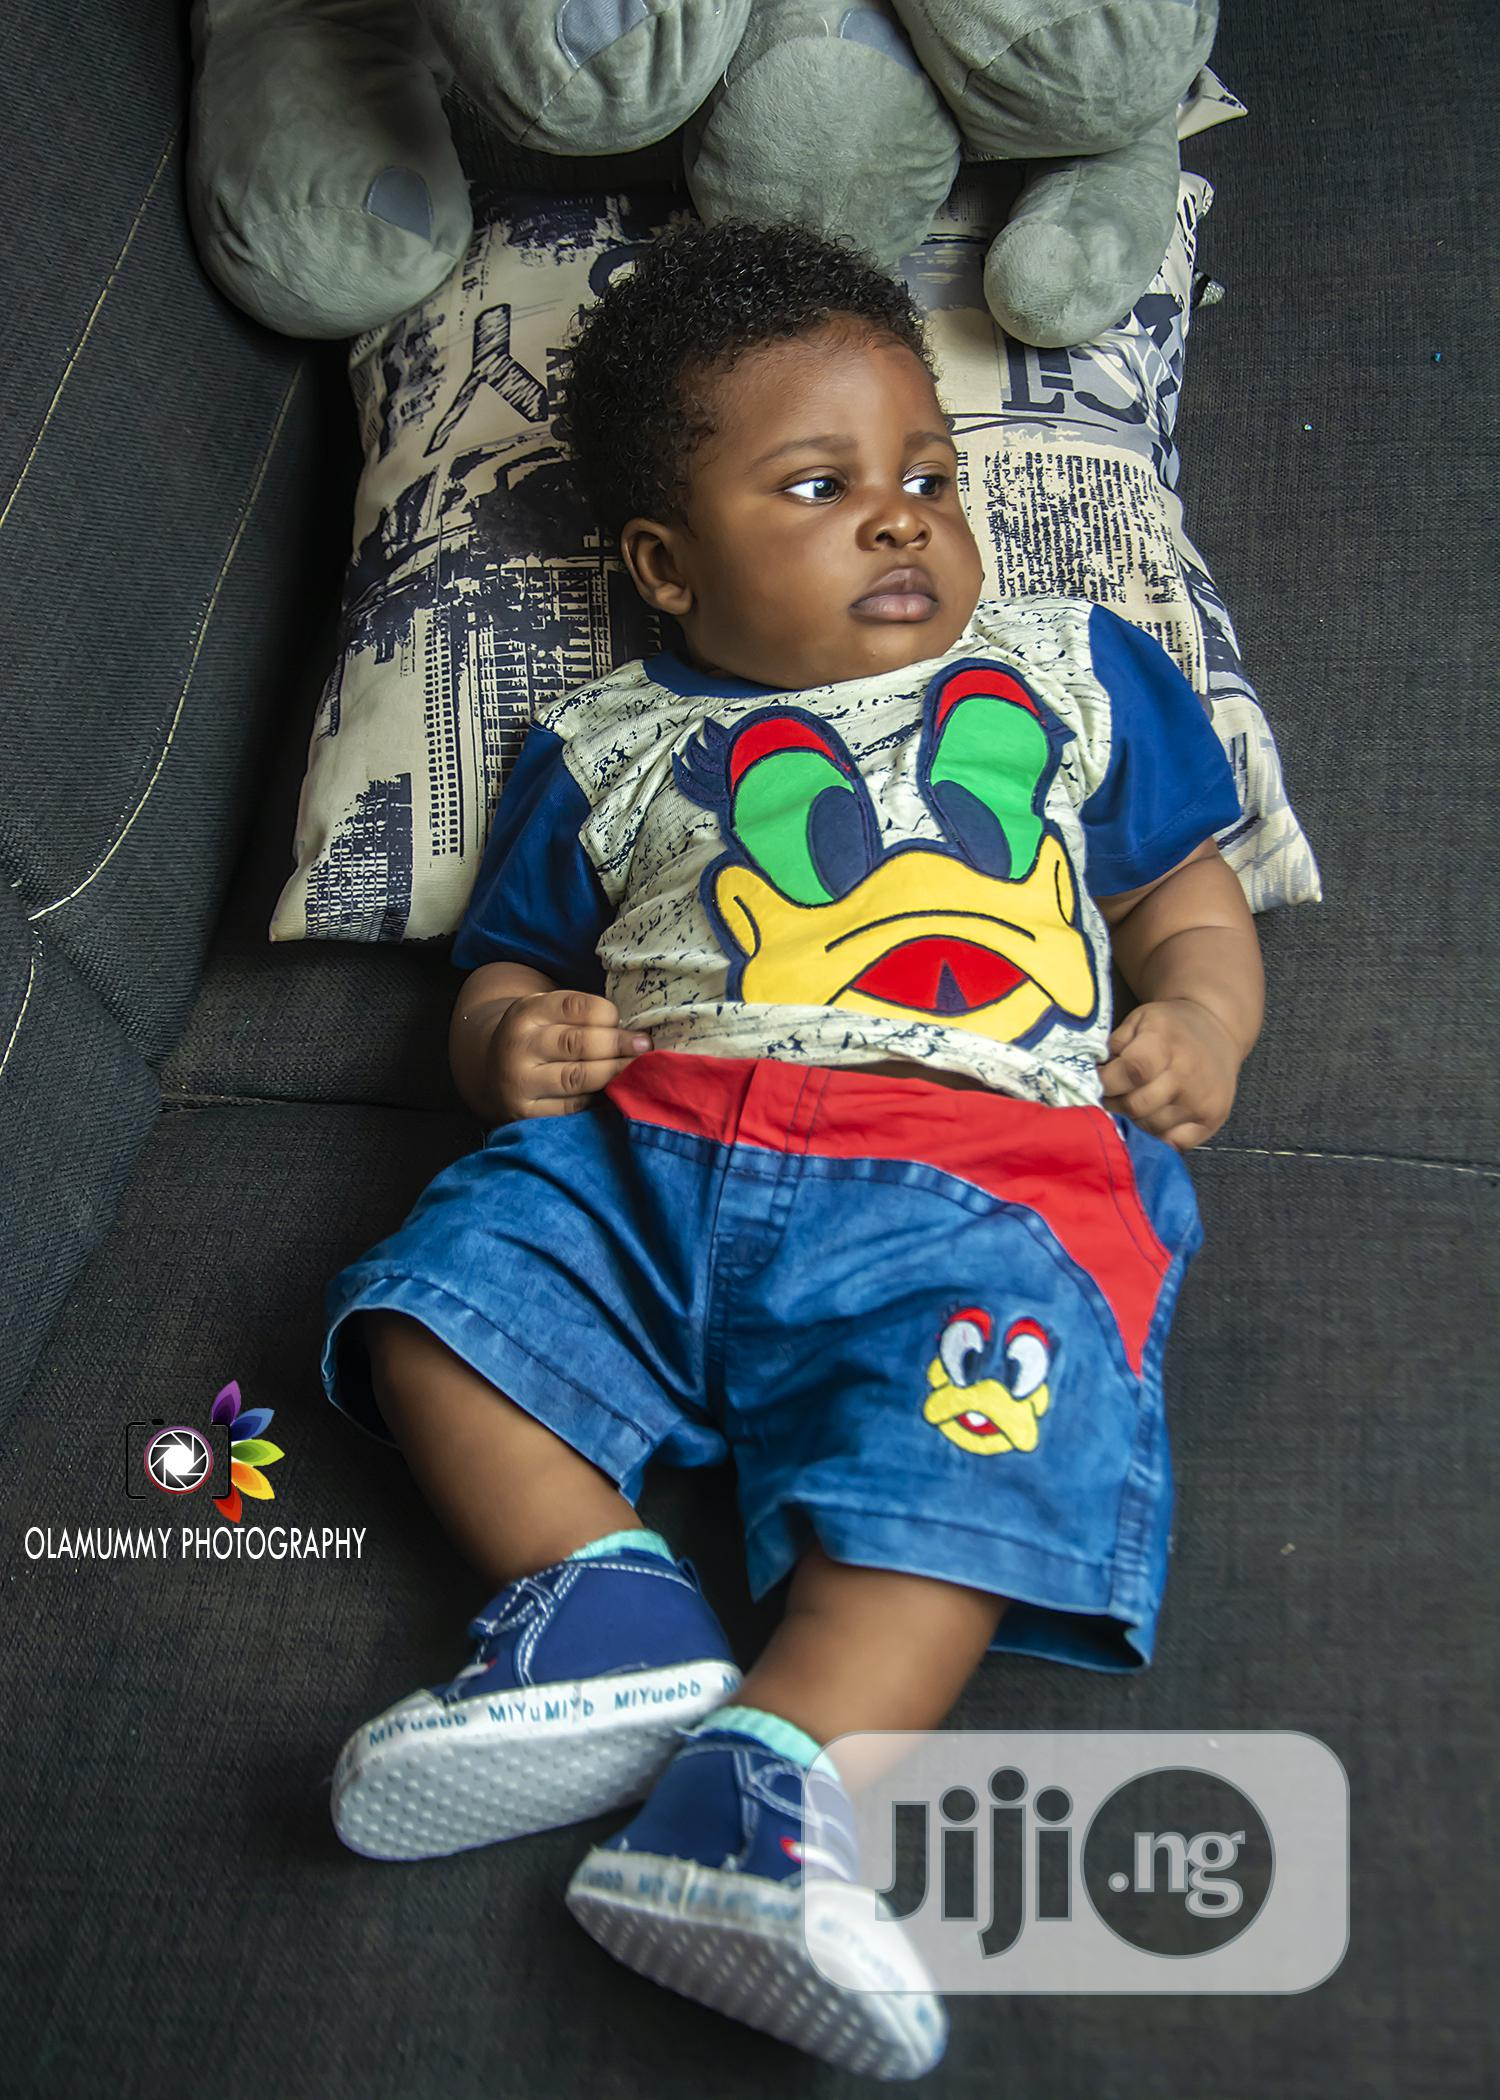 Photoshoot, Birthday Per Shoot, Model Photograph | Photography & Video Services for sale in Ikorodu, Lagos State, Nigeria